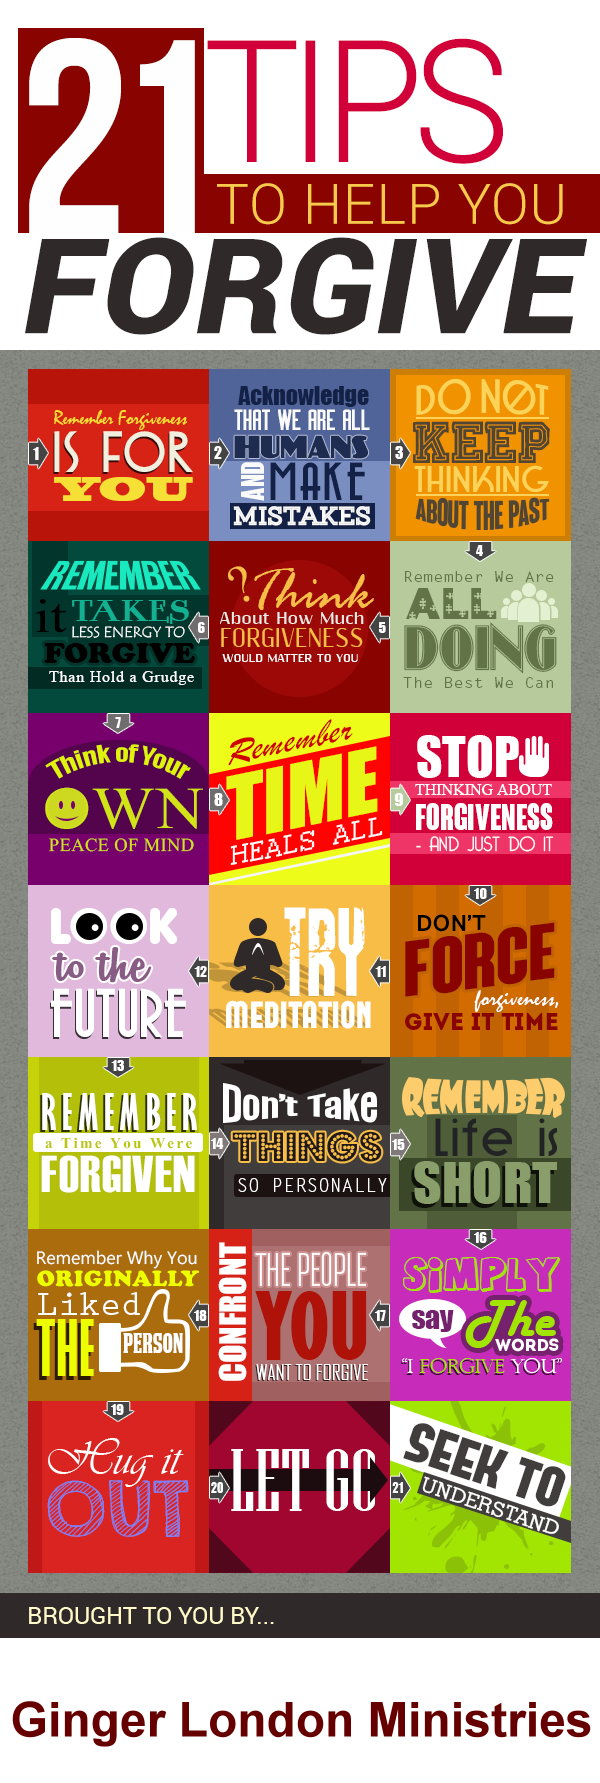 ForgivenessTips_Infographic